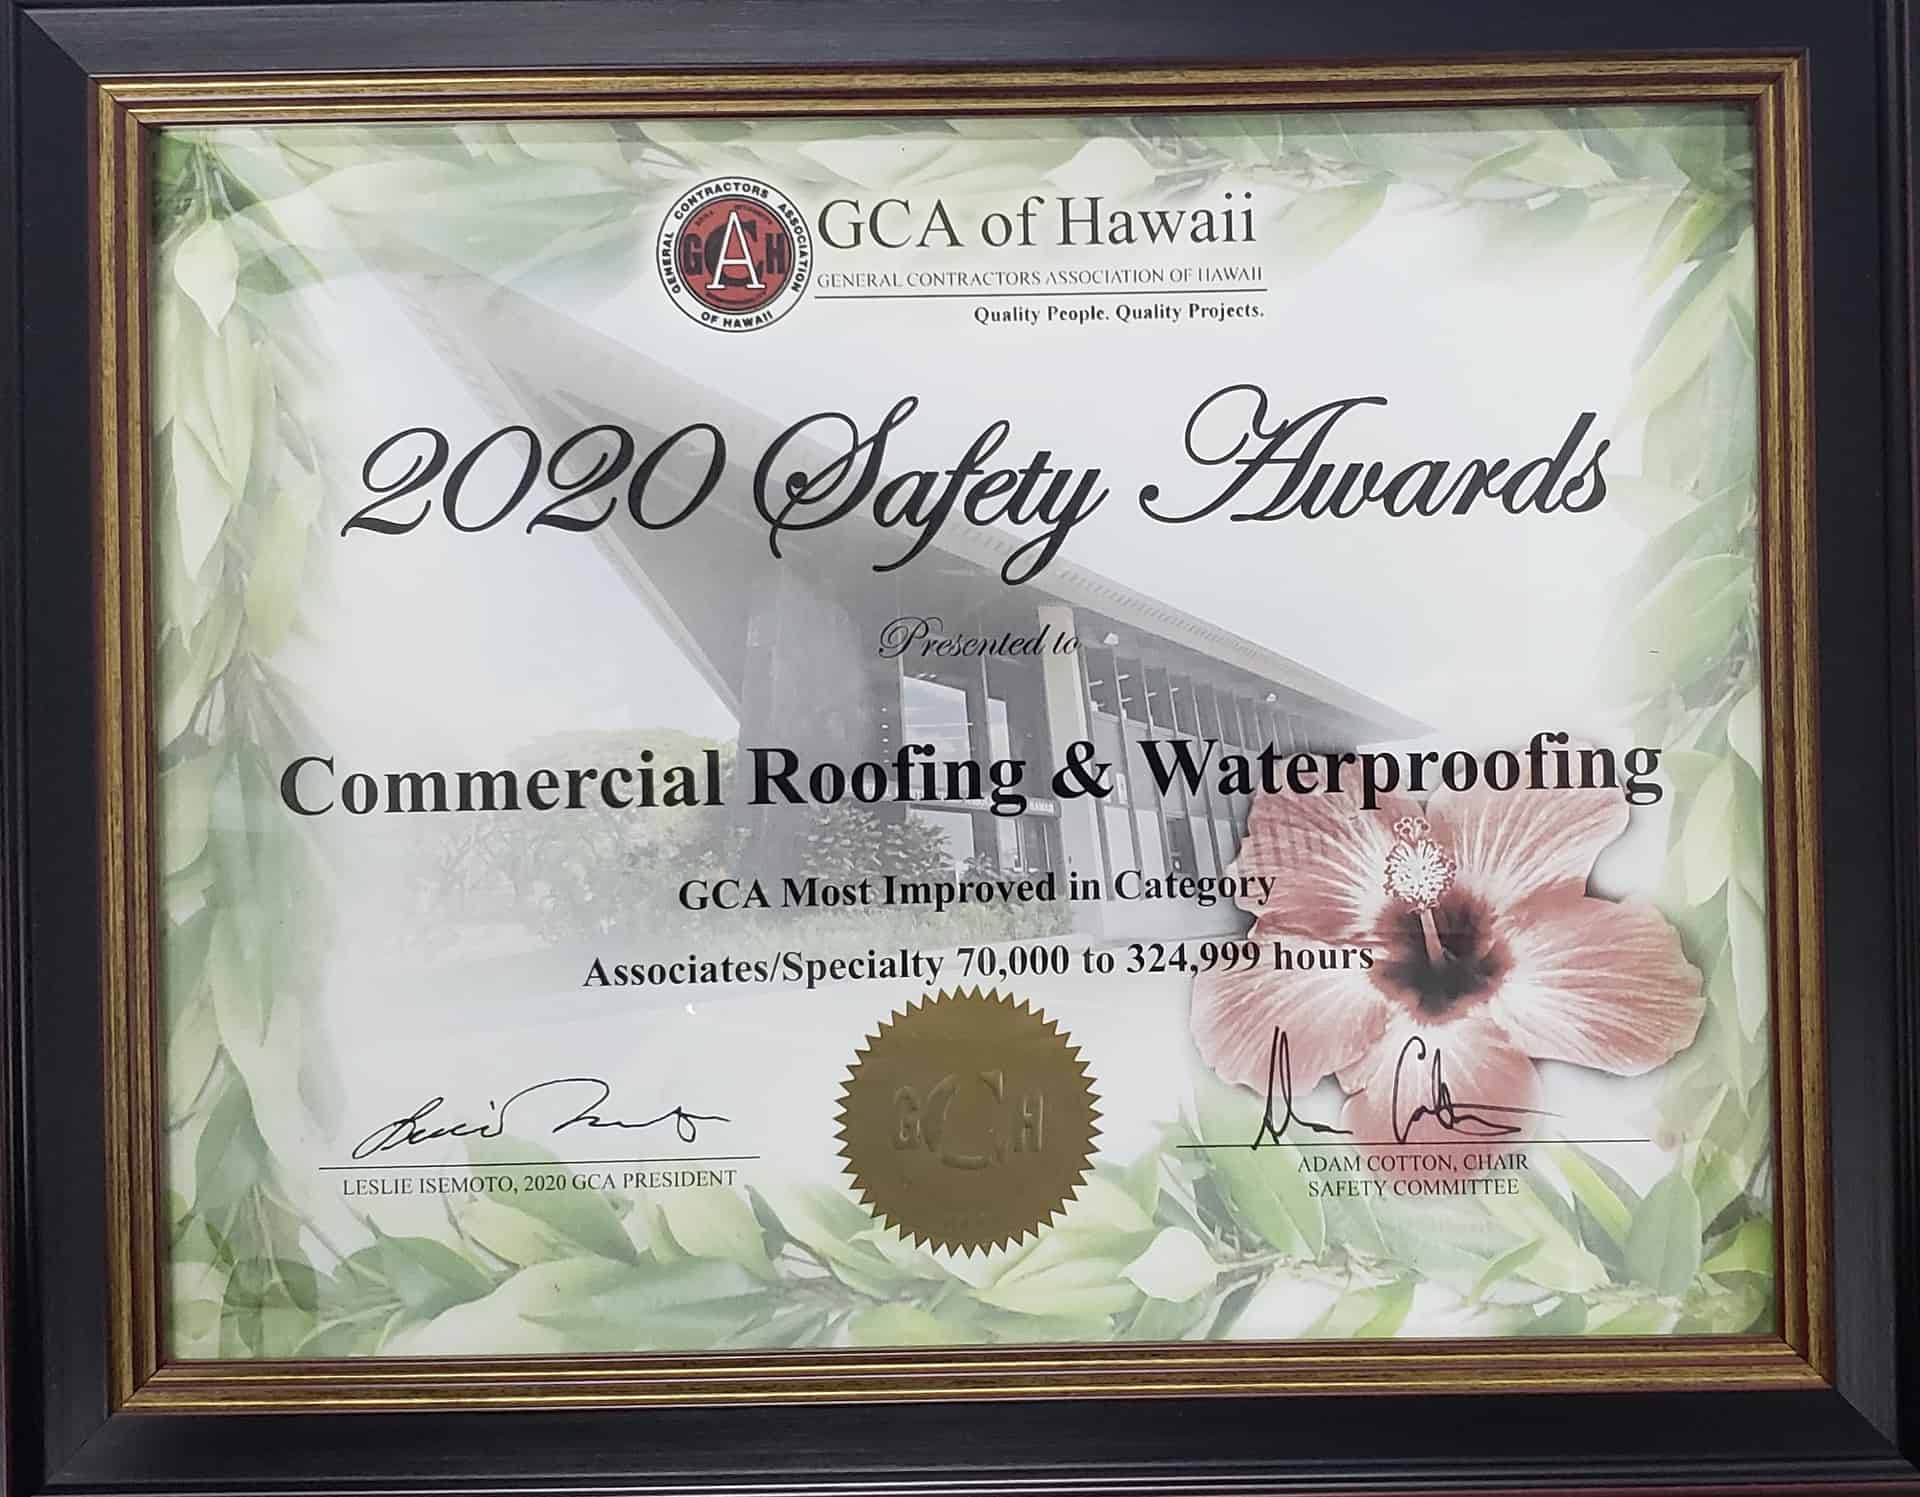 Commercial Roofing 2020 GCA Hawaii Safety Awards